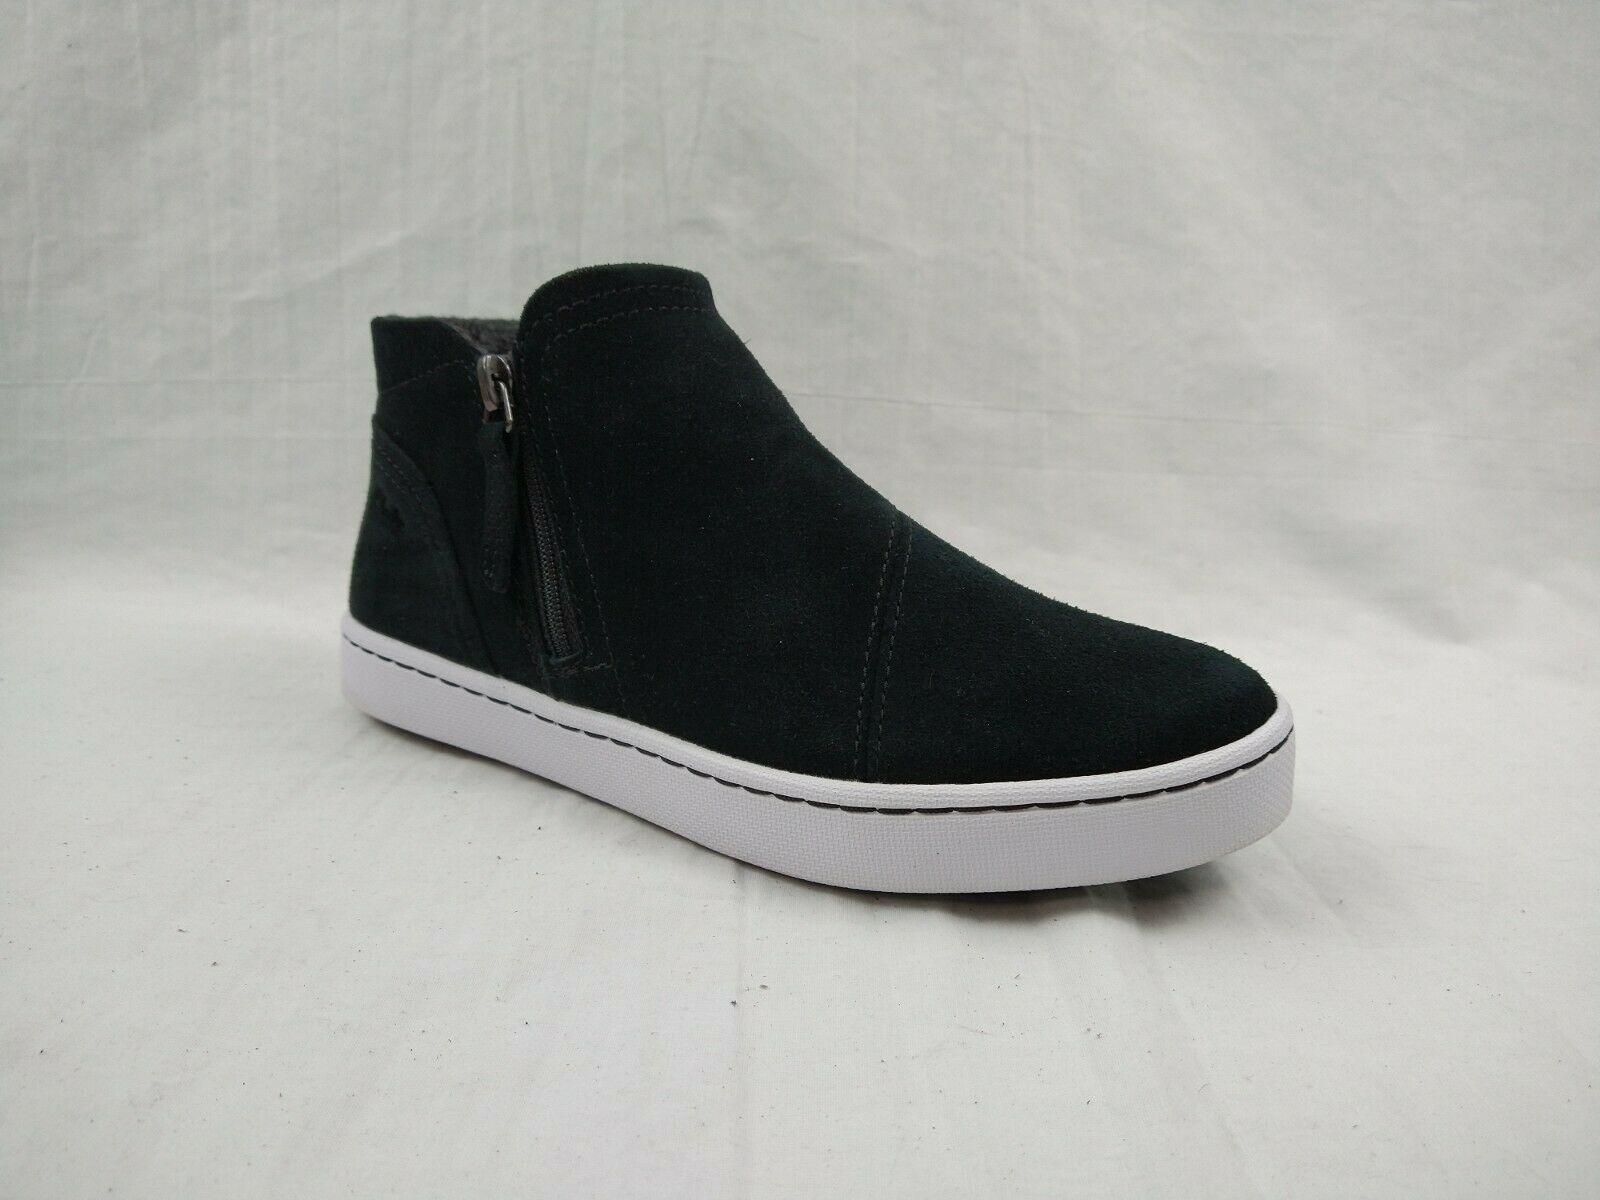 Clarks Pawley Joy Black Suede Leather Lined Sneaker Boots Women's Size 6.5 M US